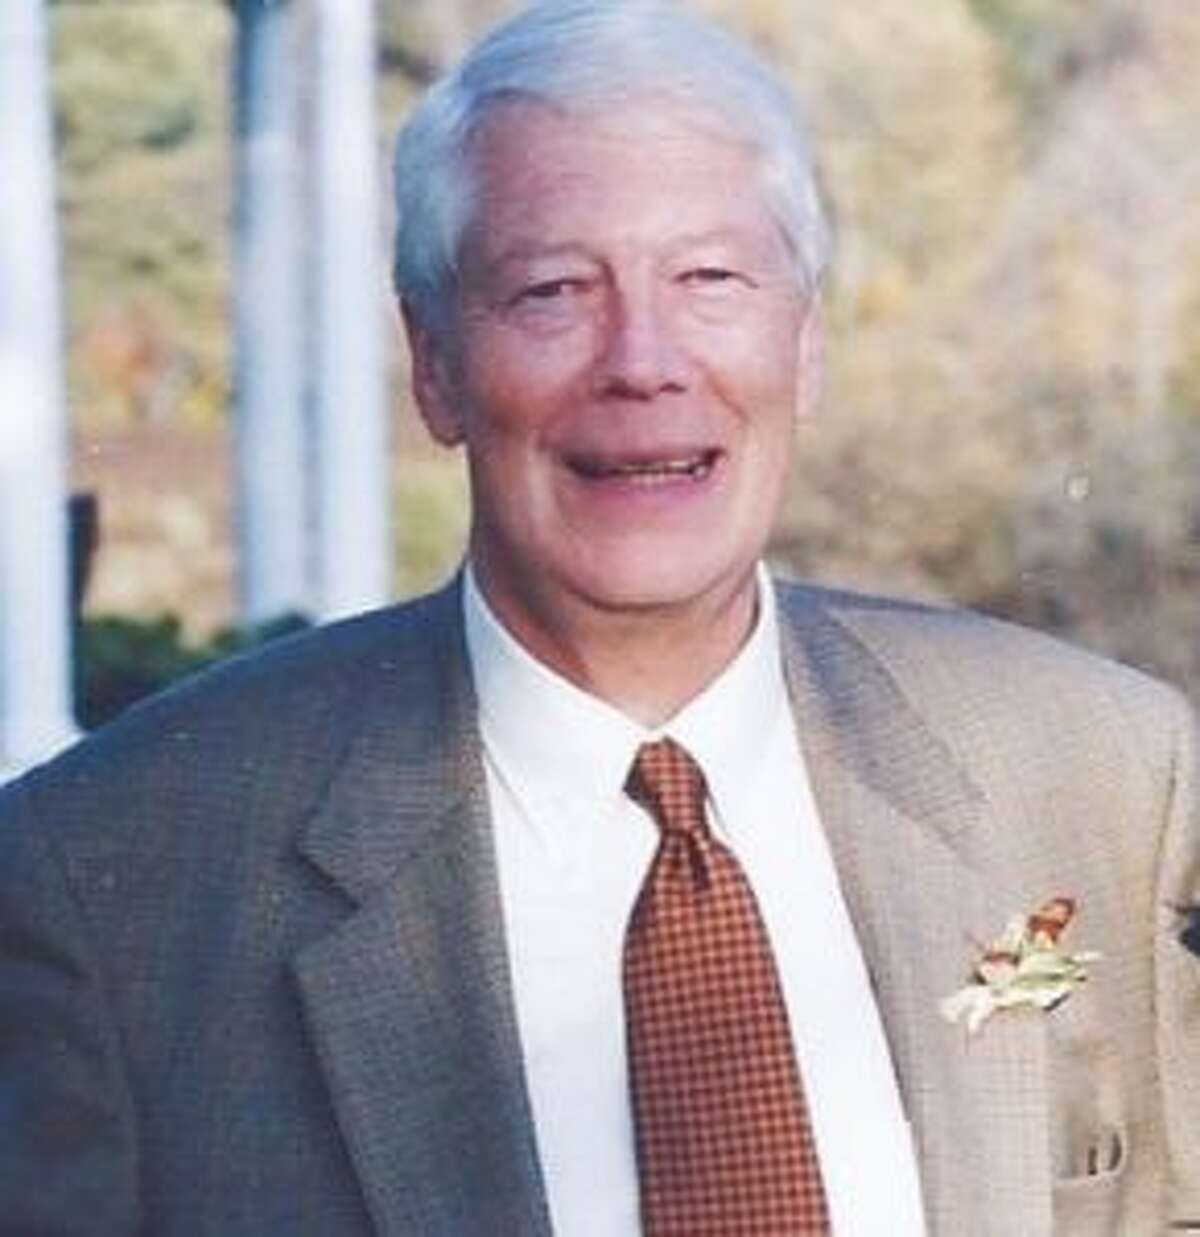 James R. Overby